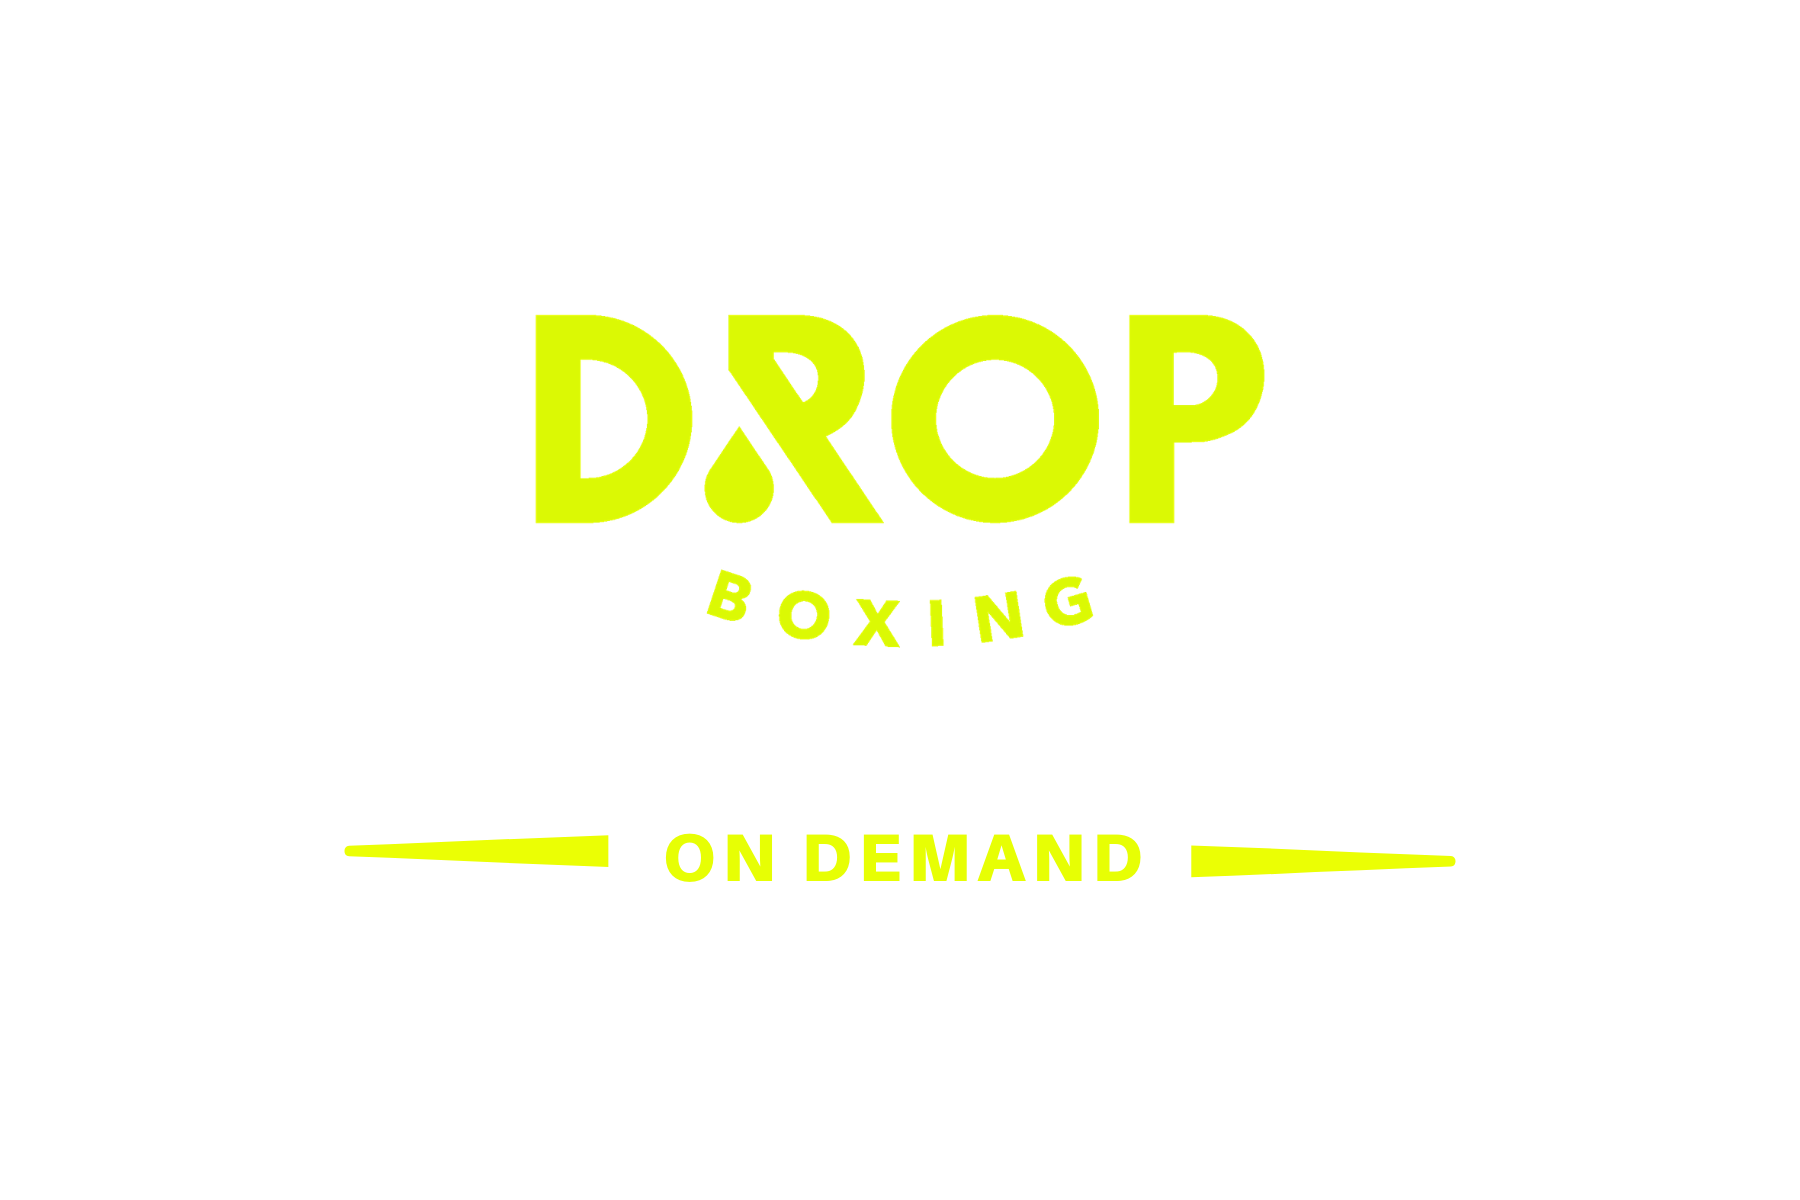 DROP Boxing On Demand